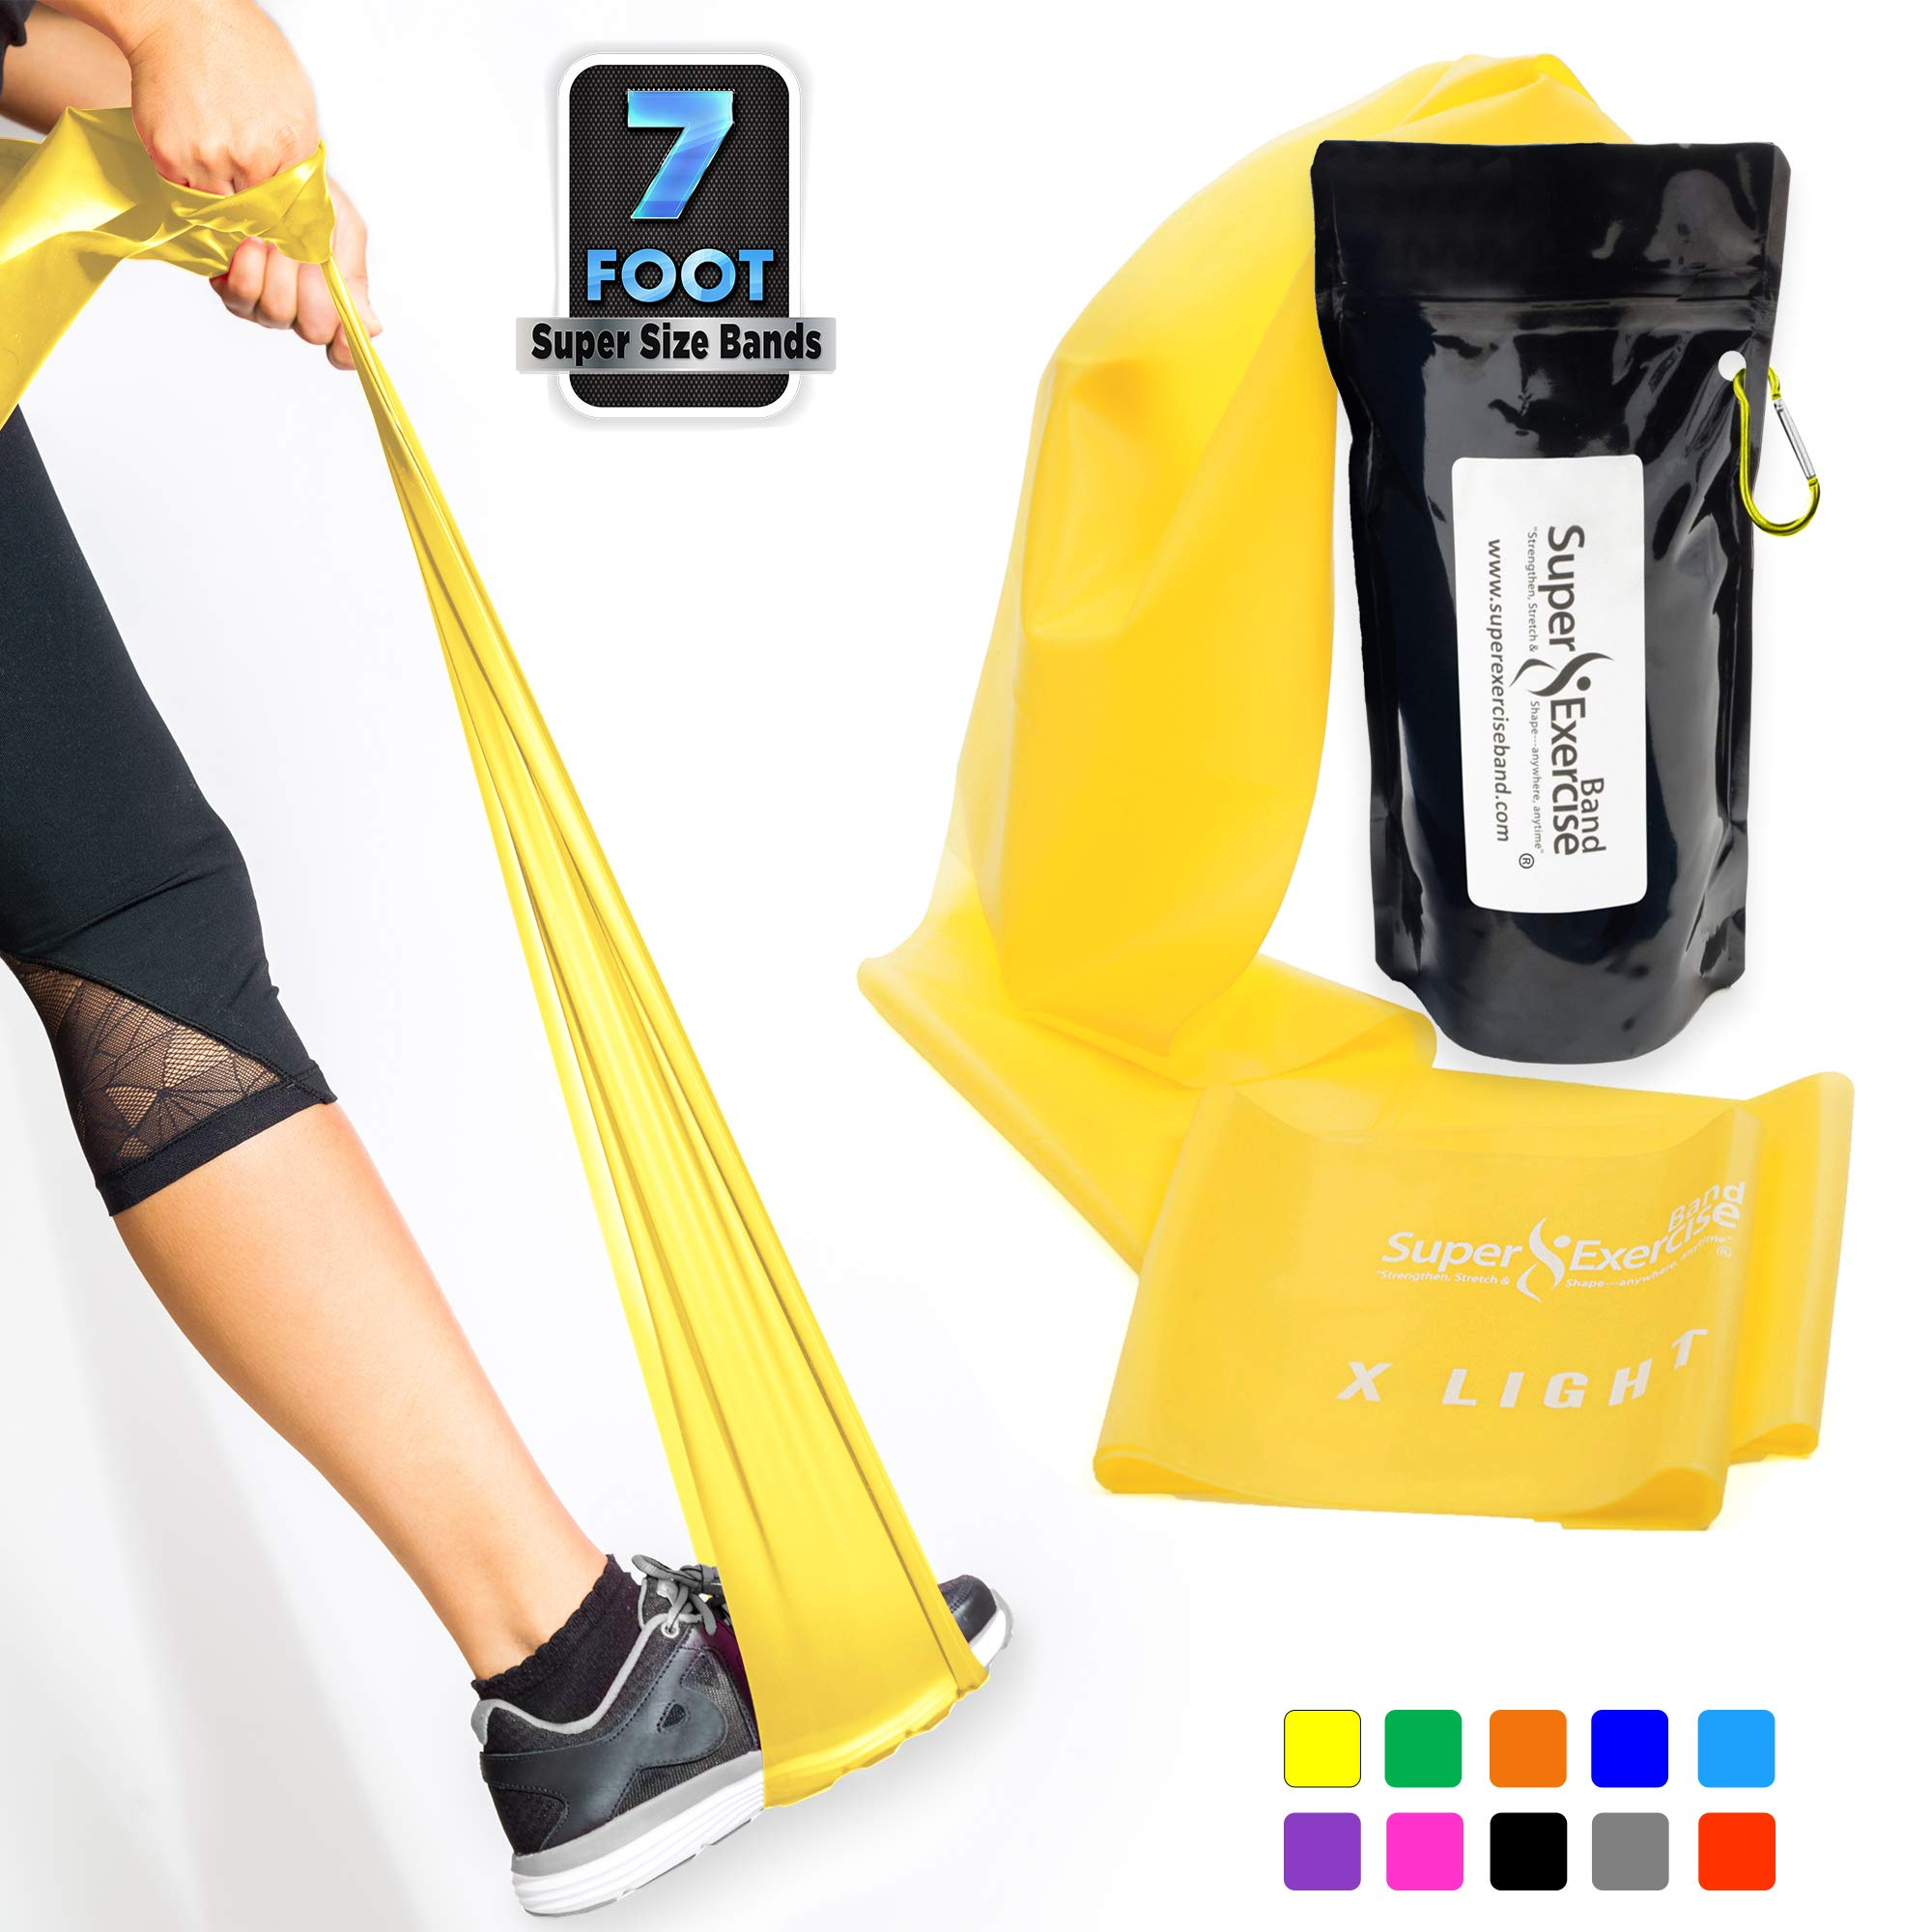 SUPER EXERCISE BAND X Light Yellow 7 ft. Long Resistance Band. Latex Free Home Gym Fitness Kit For Strength Training, Physical Therapy, Yoga, Pilates or Chair Workouts. Plus Carry Pouch & E-Book